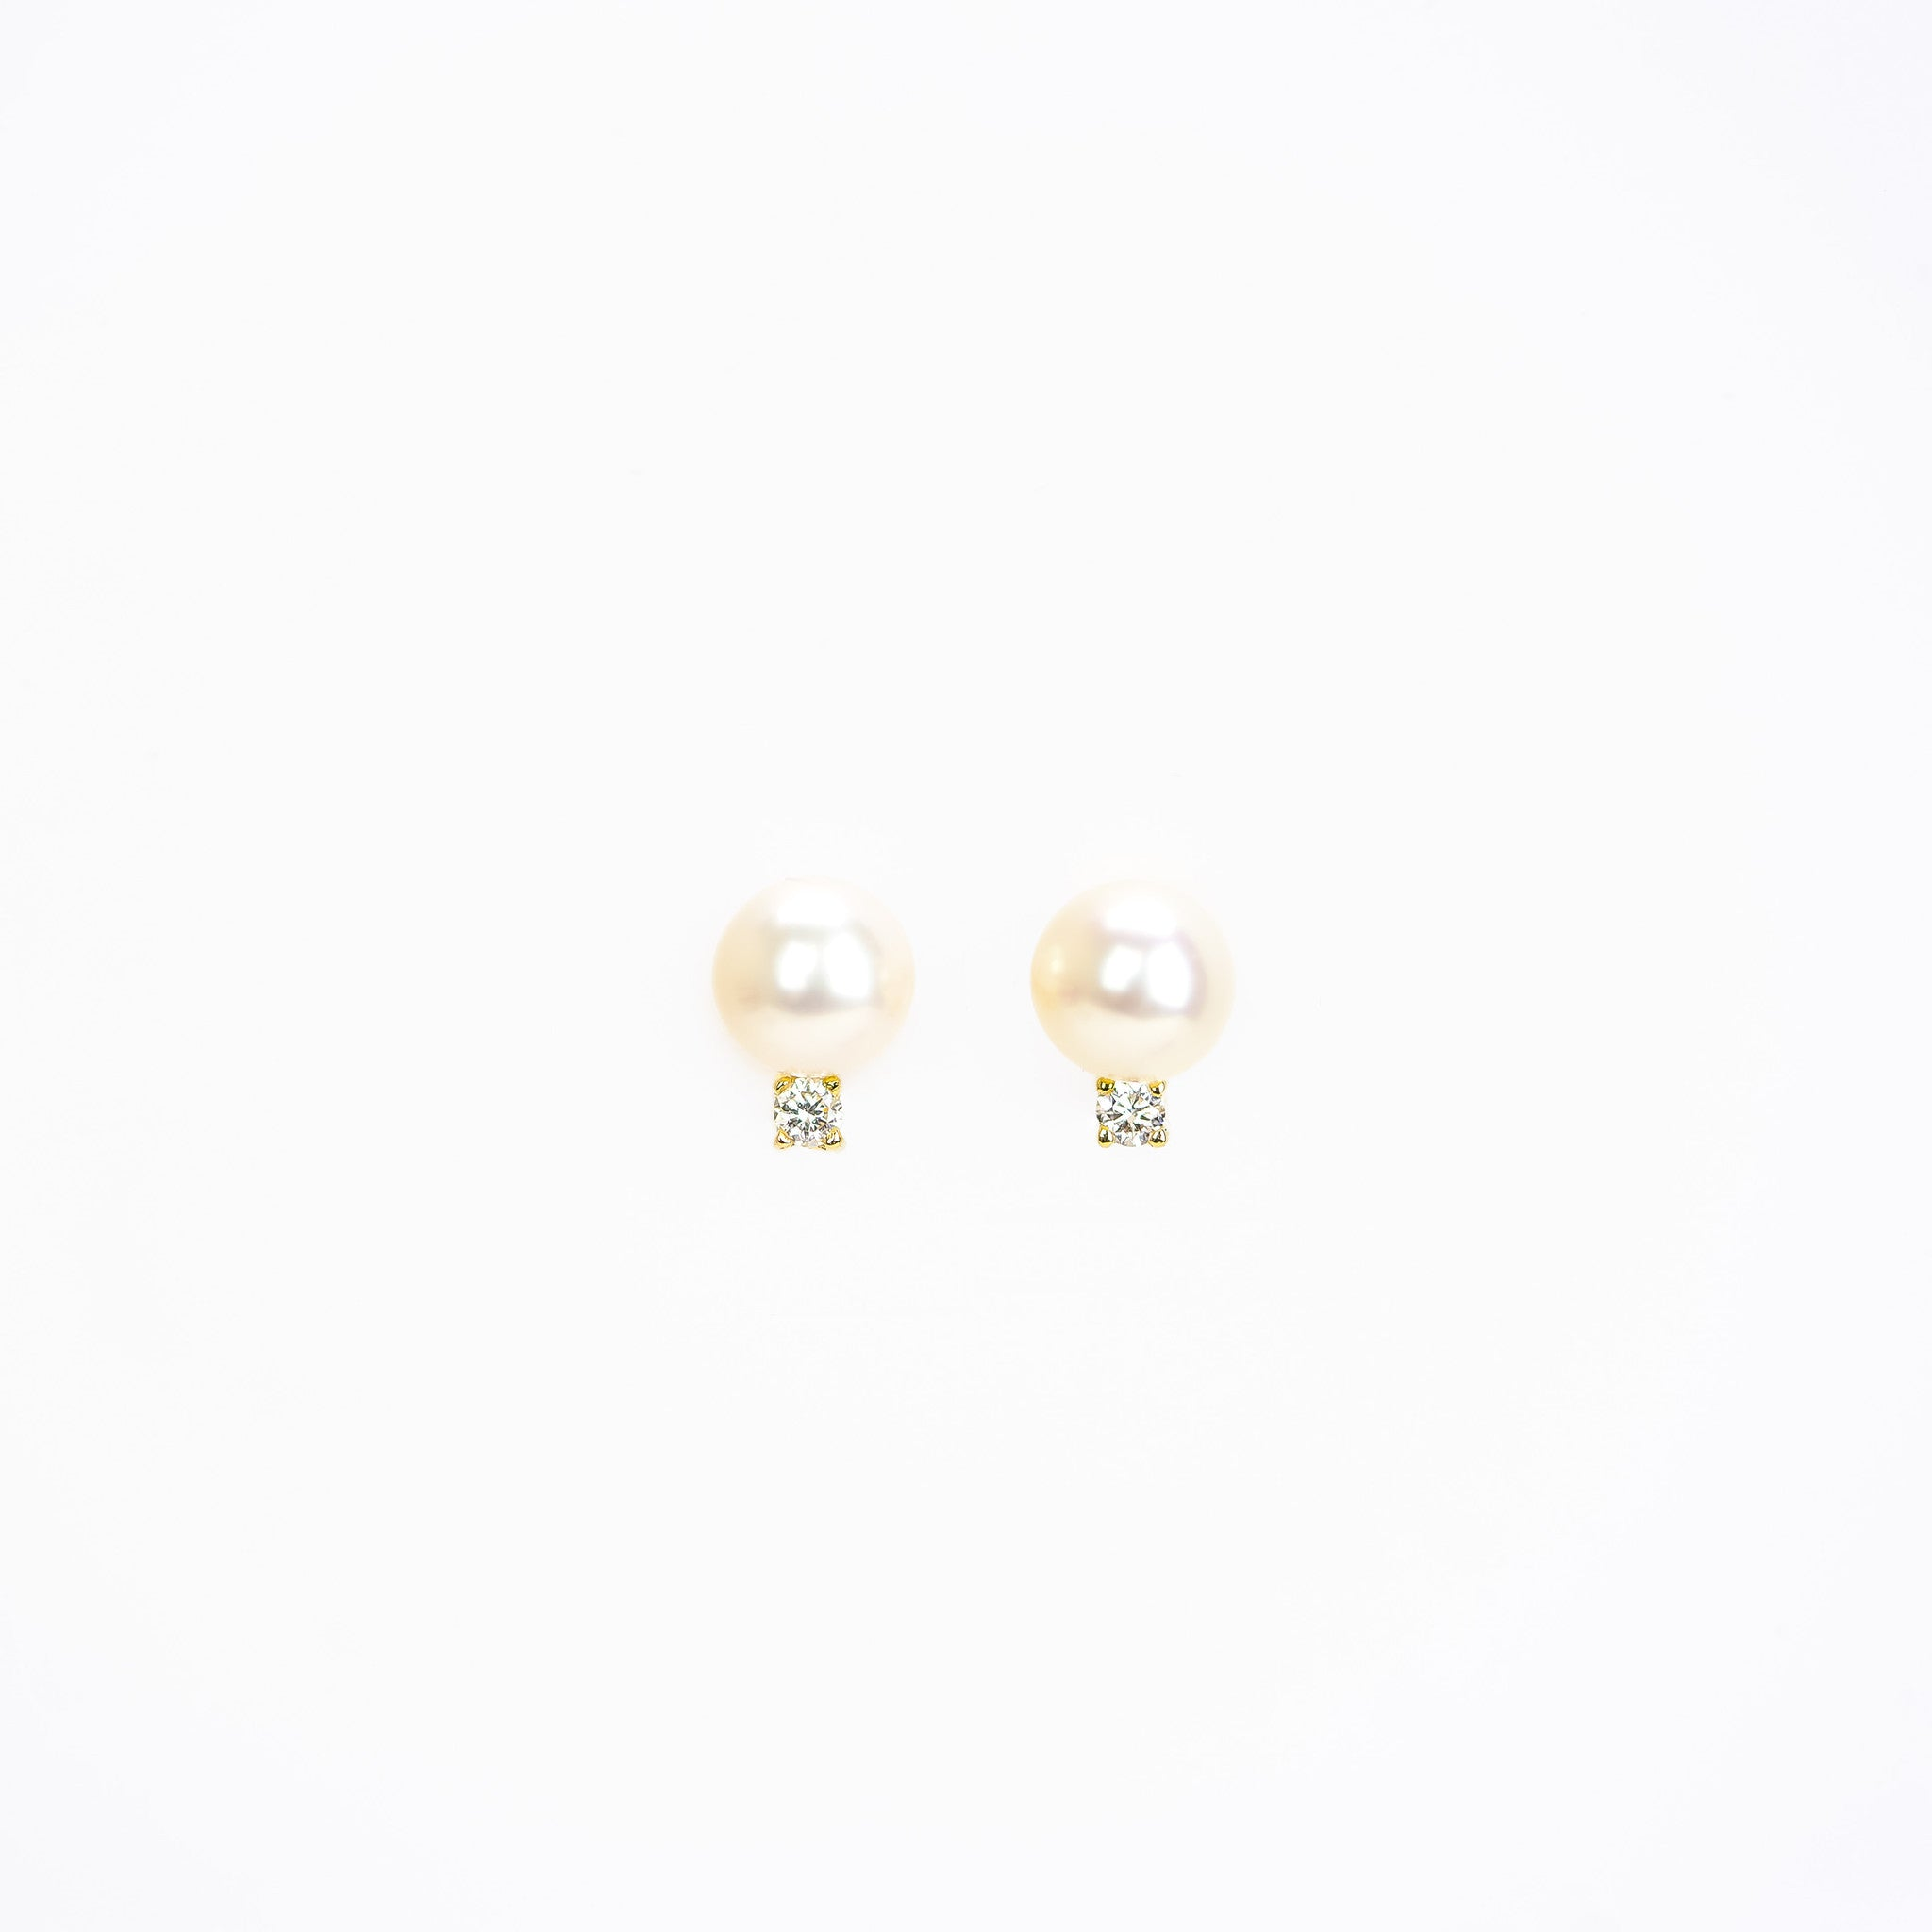 Pearl and Diamond Earrings by Atheria Jewelry